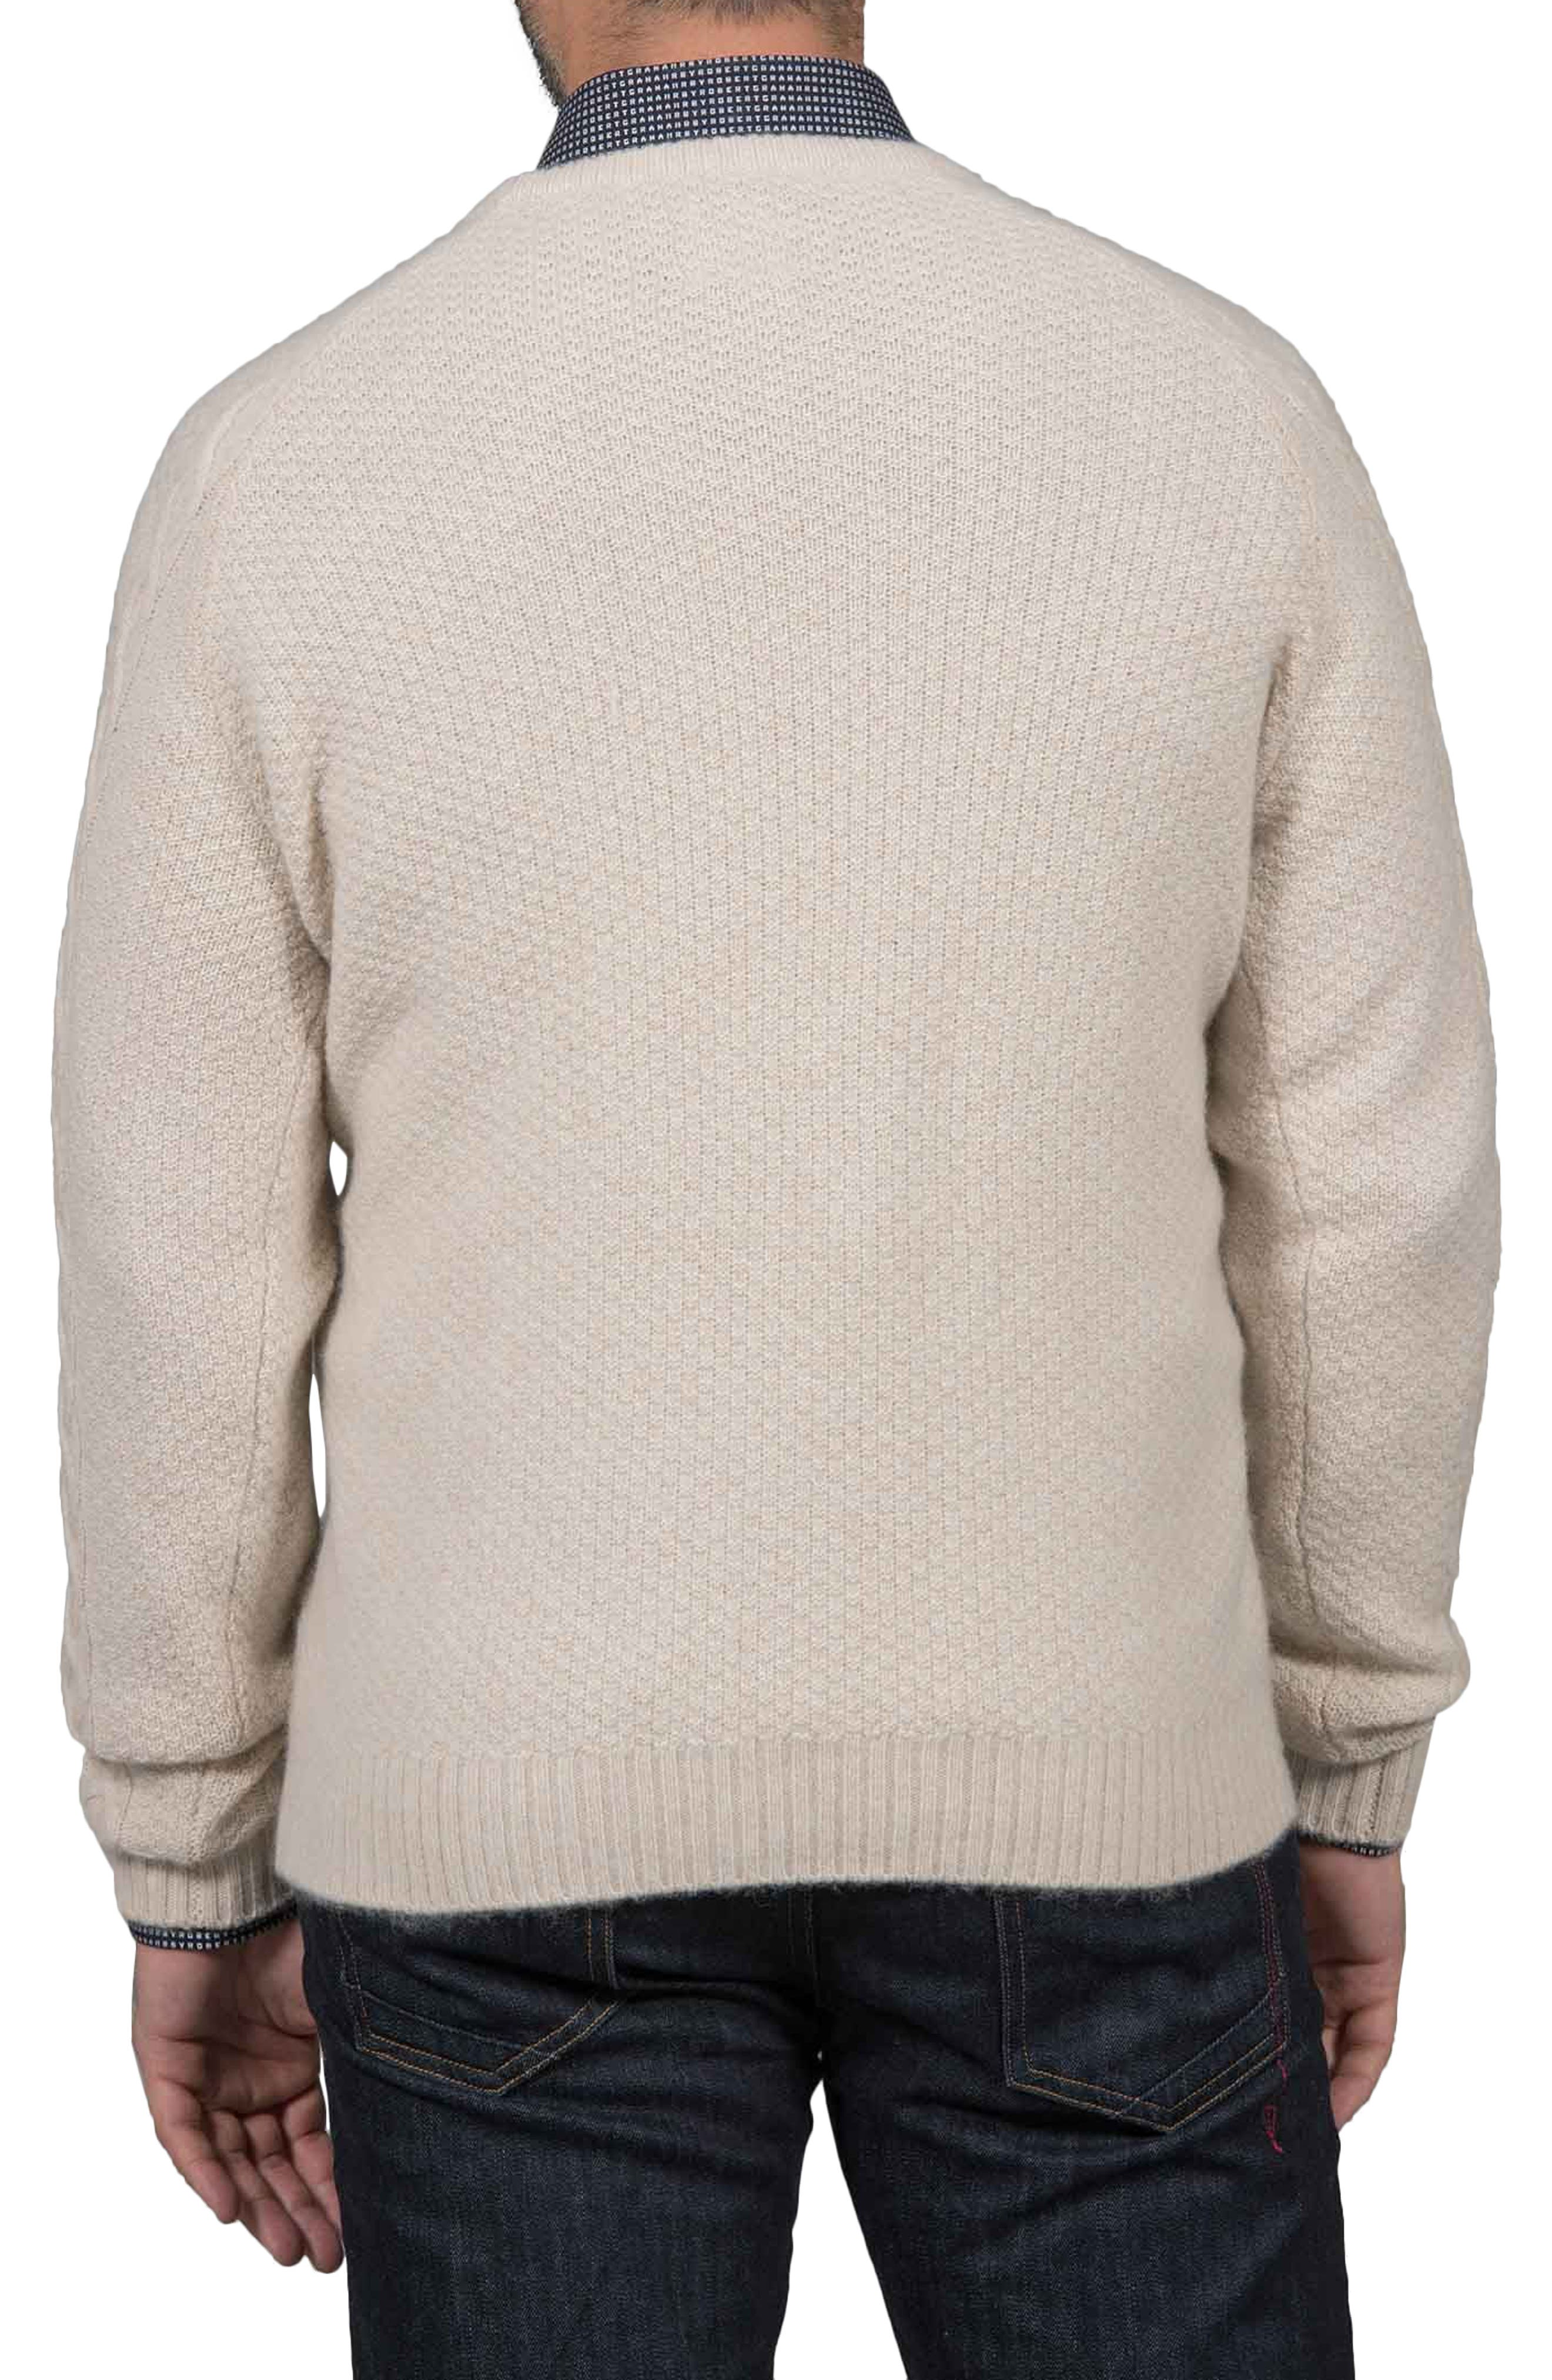 Slim Fit Fortitude Cashmere Sweater,                             Alternate thumbnail 2, color,                             CREAM